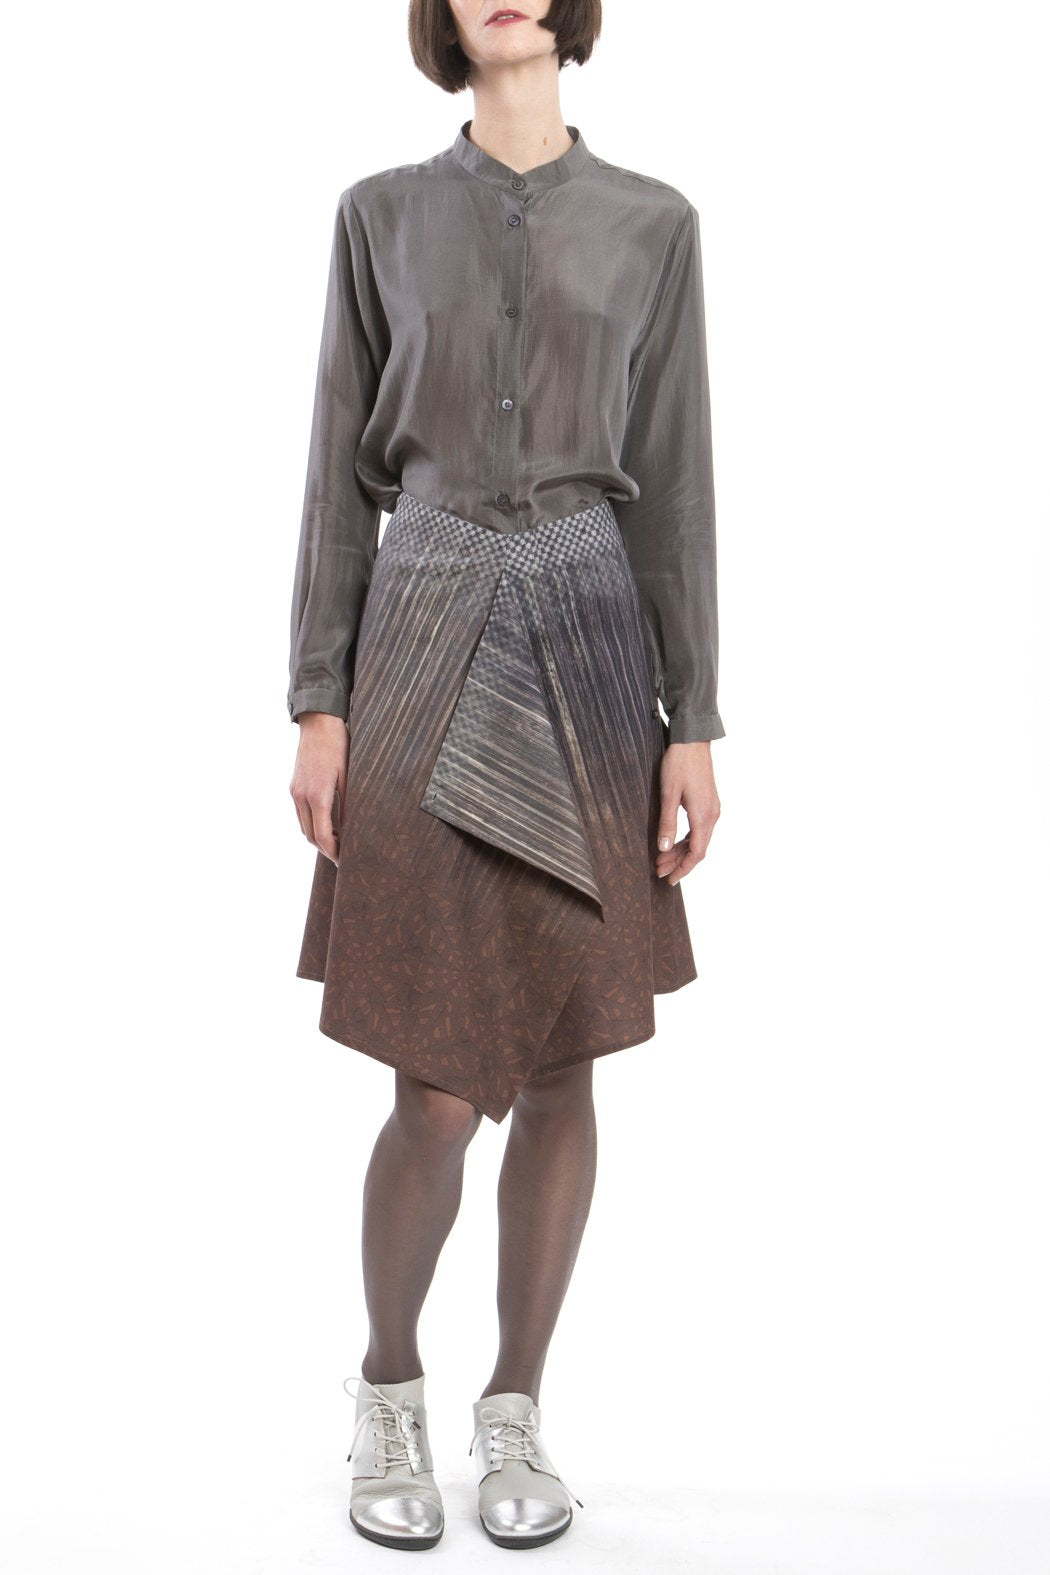 Skirt Modifiable Gradient-brown